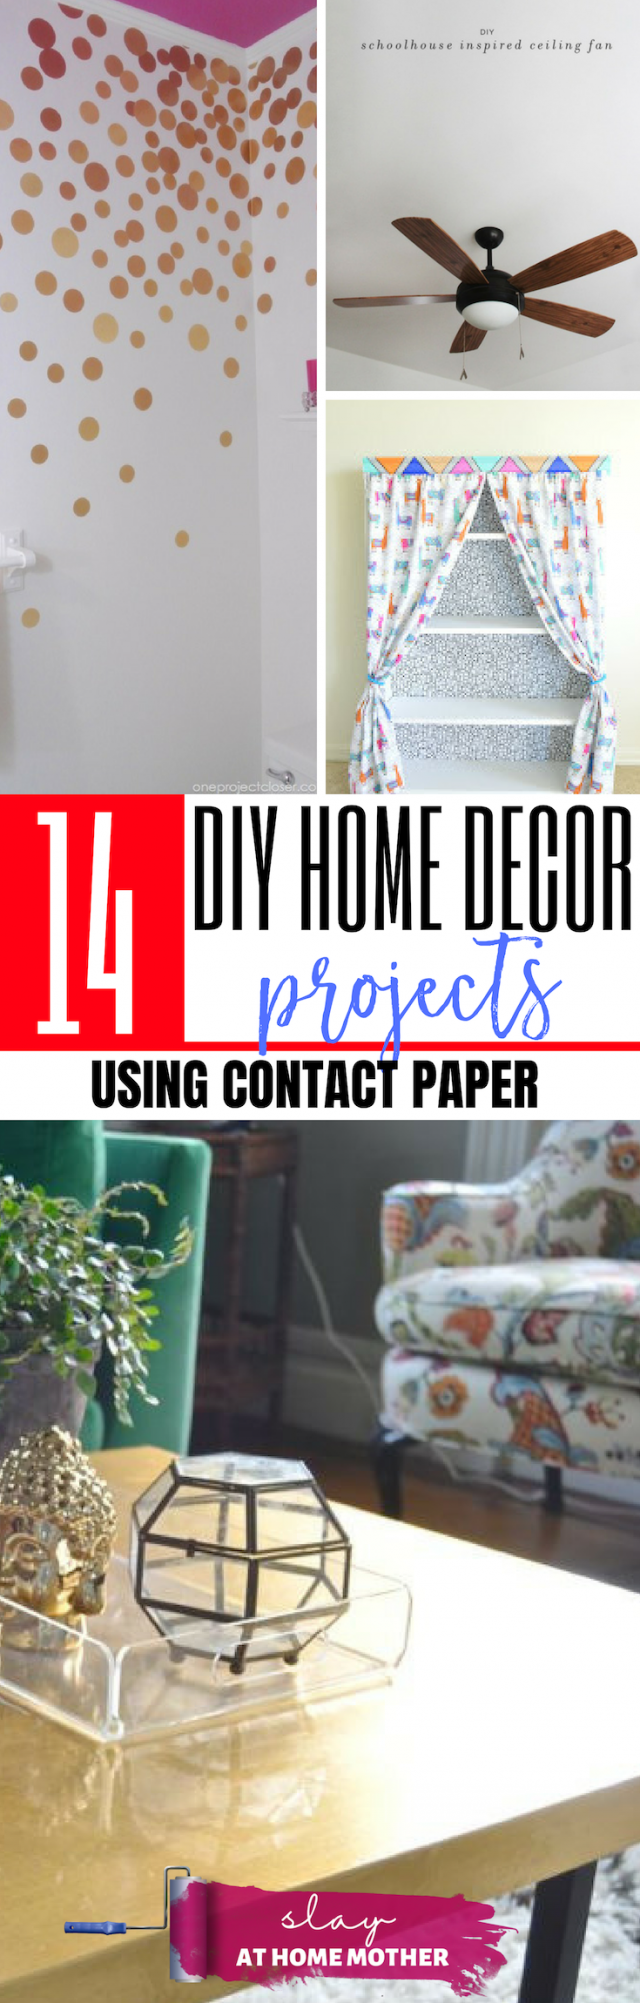 14 Contact Paper DIY Projects That Are Renter-Friendly And Easily Removable! #slayathomemother #diy #contactpaper - SLAYathomemother.com